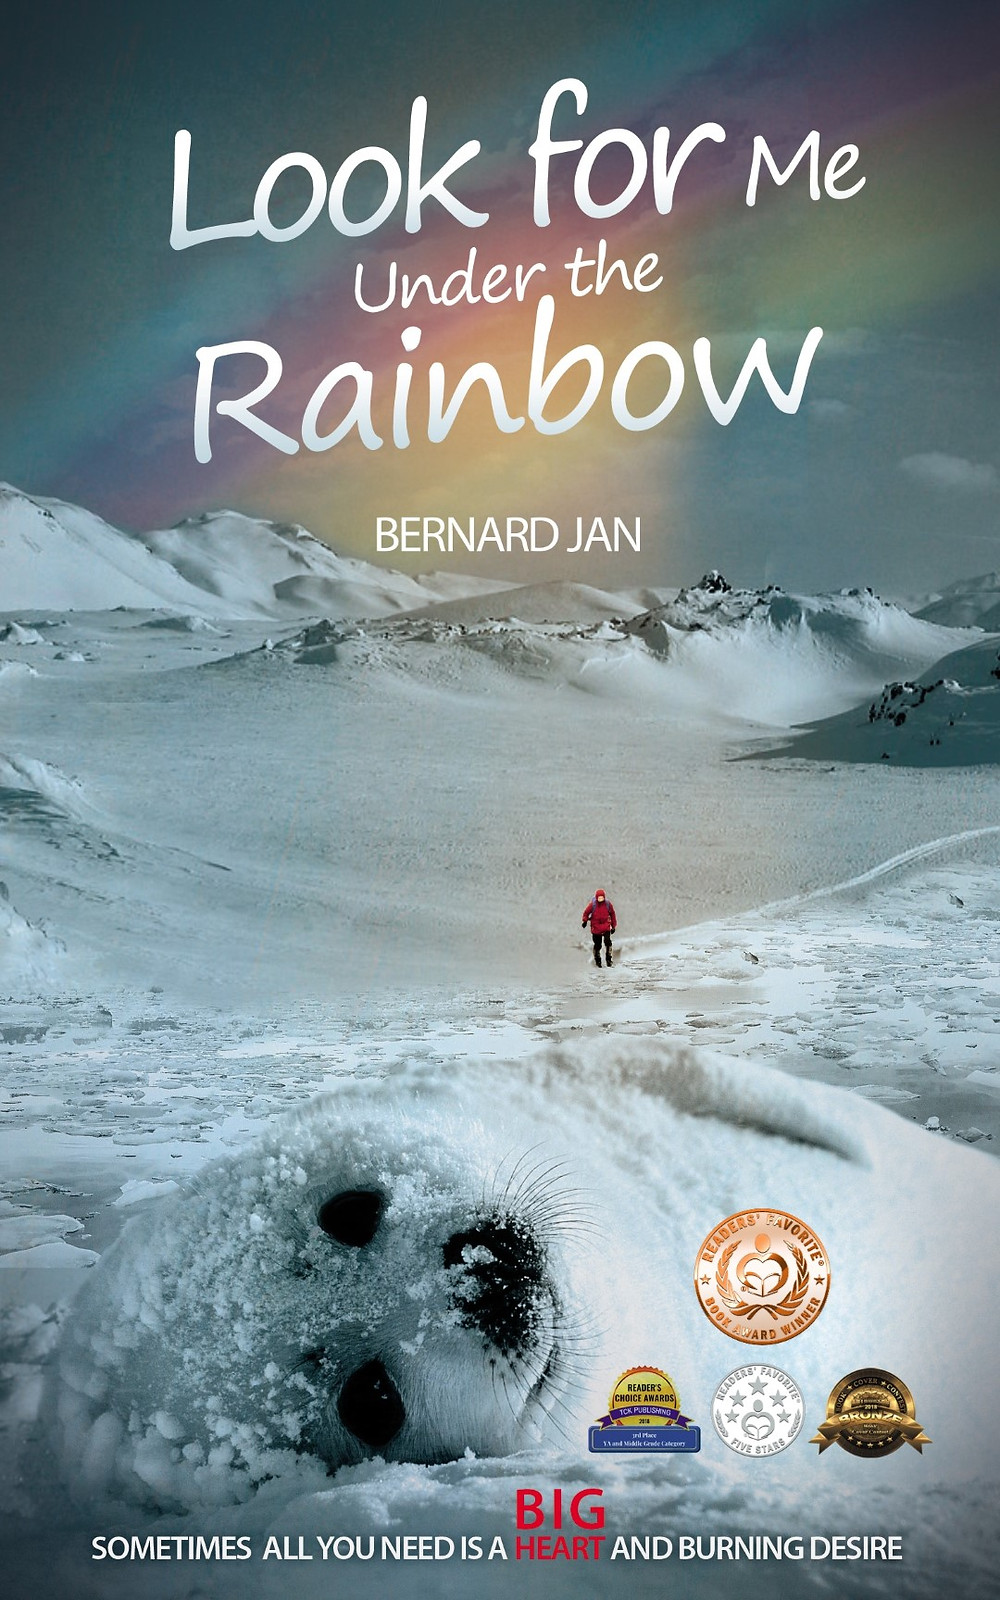 Look for Me Under the Rainbow by Bernard Jan with awards